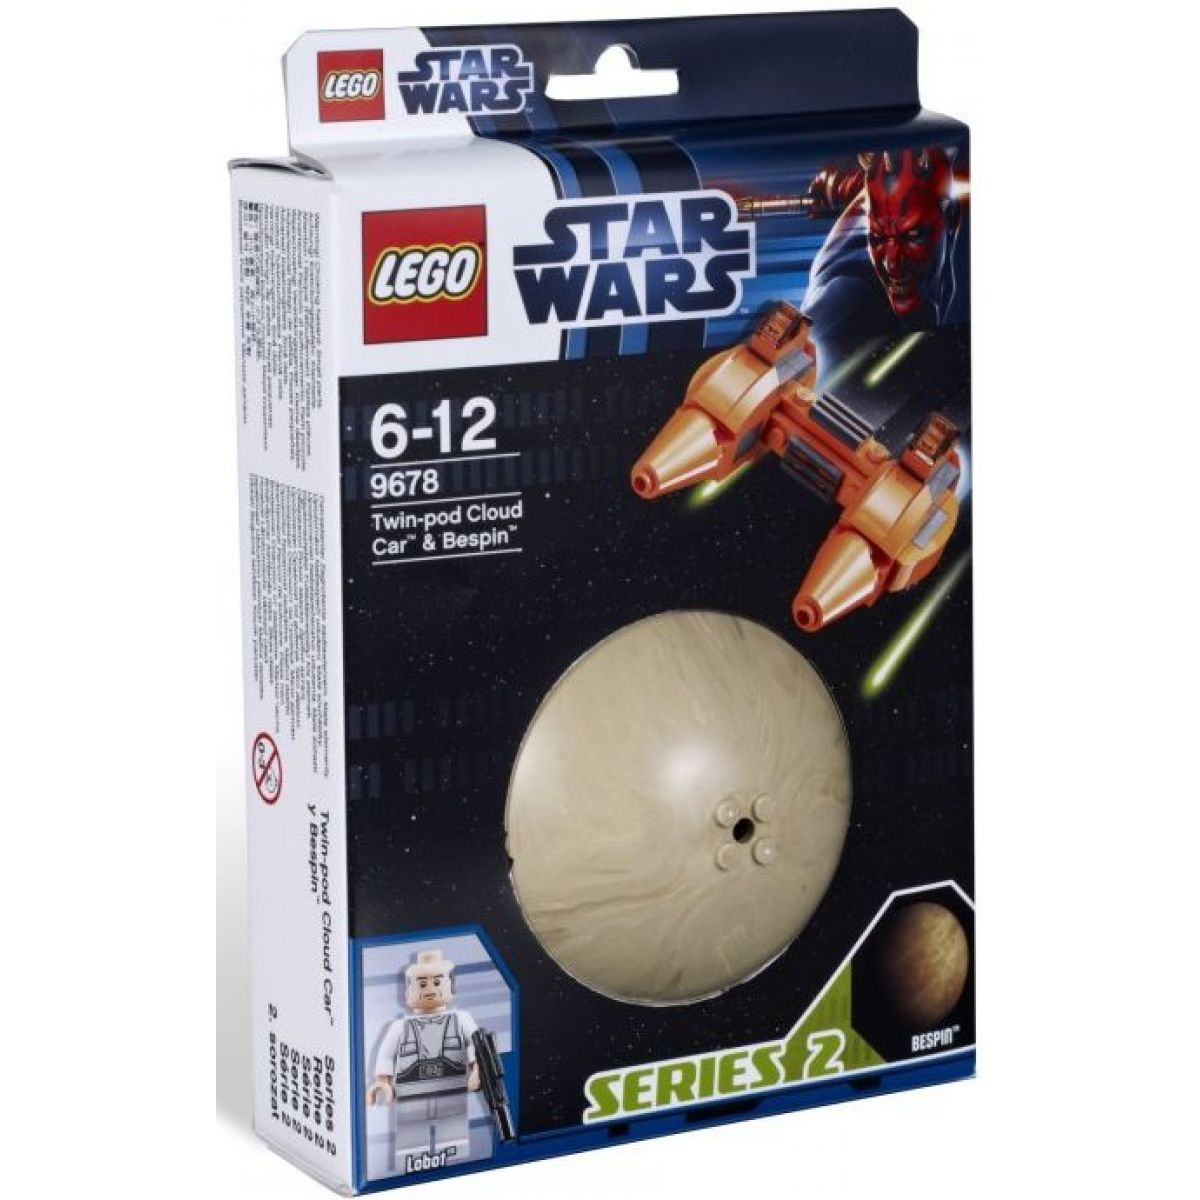 LEGO Star Wars 9678 Twin-pod Cloud Car a Bespin